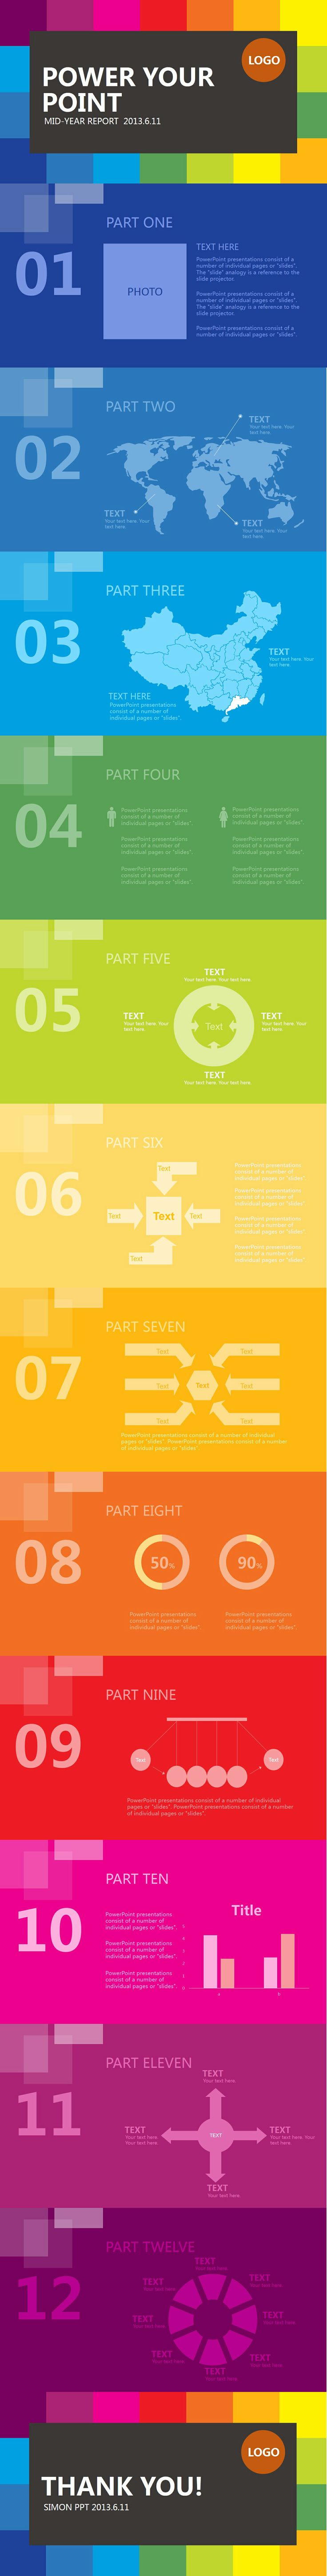 PPT Template Designed by Simon.  Download:http://www.pptstore.net/shangwu_ppt/5789.html